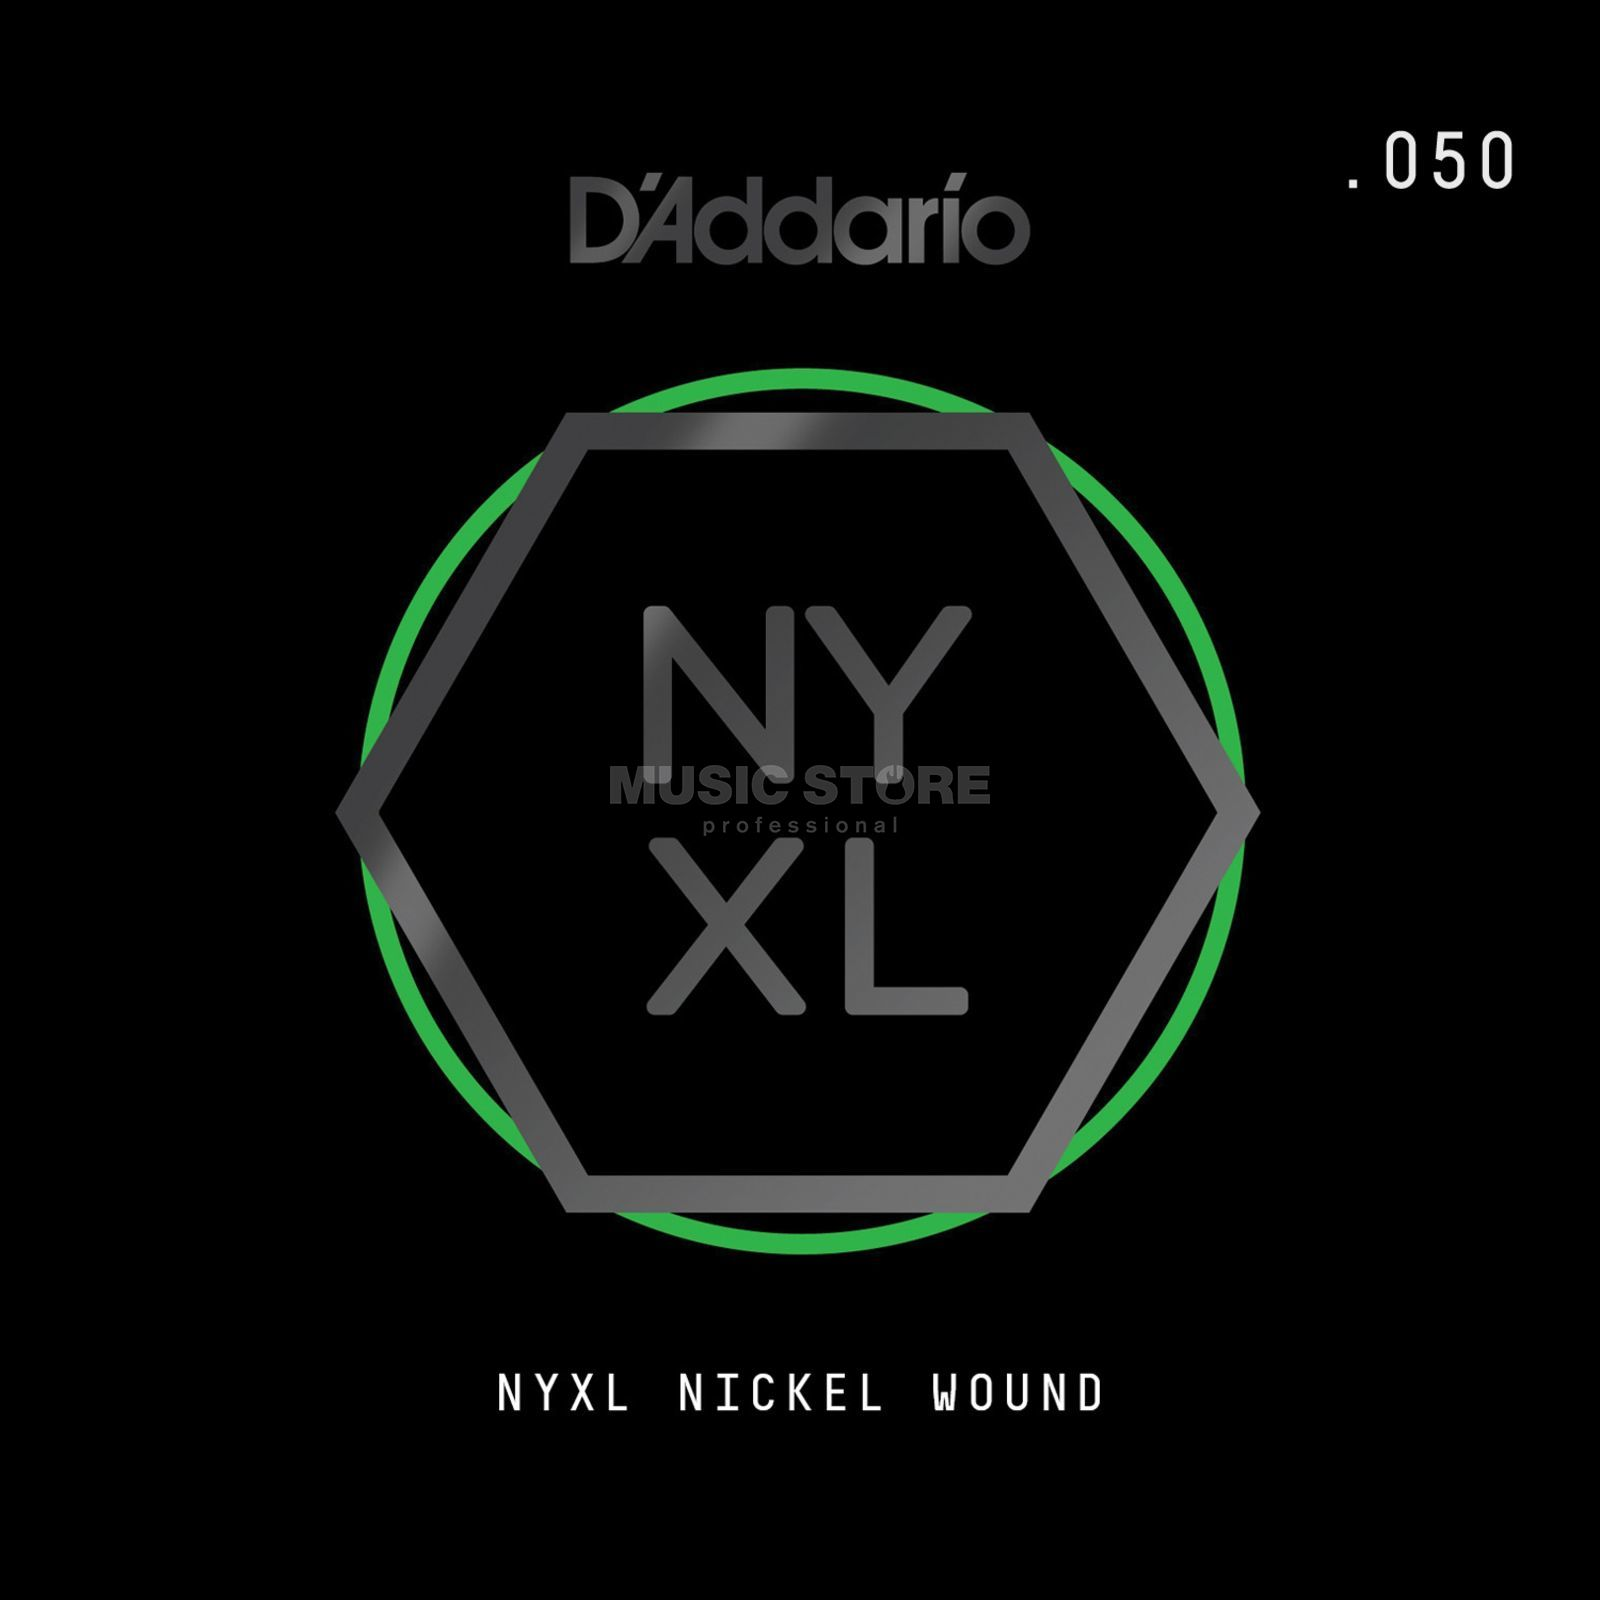 D'Addario NYNW050 Single String Nickel Wound Product Image